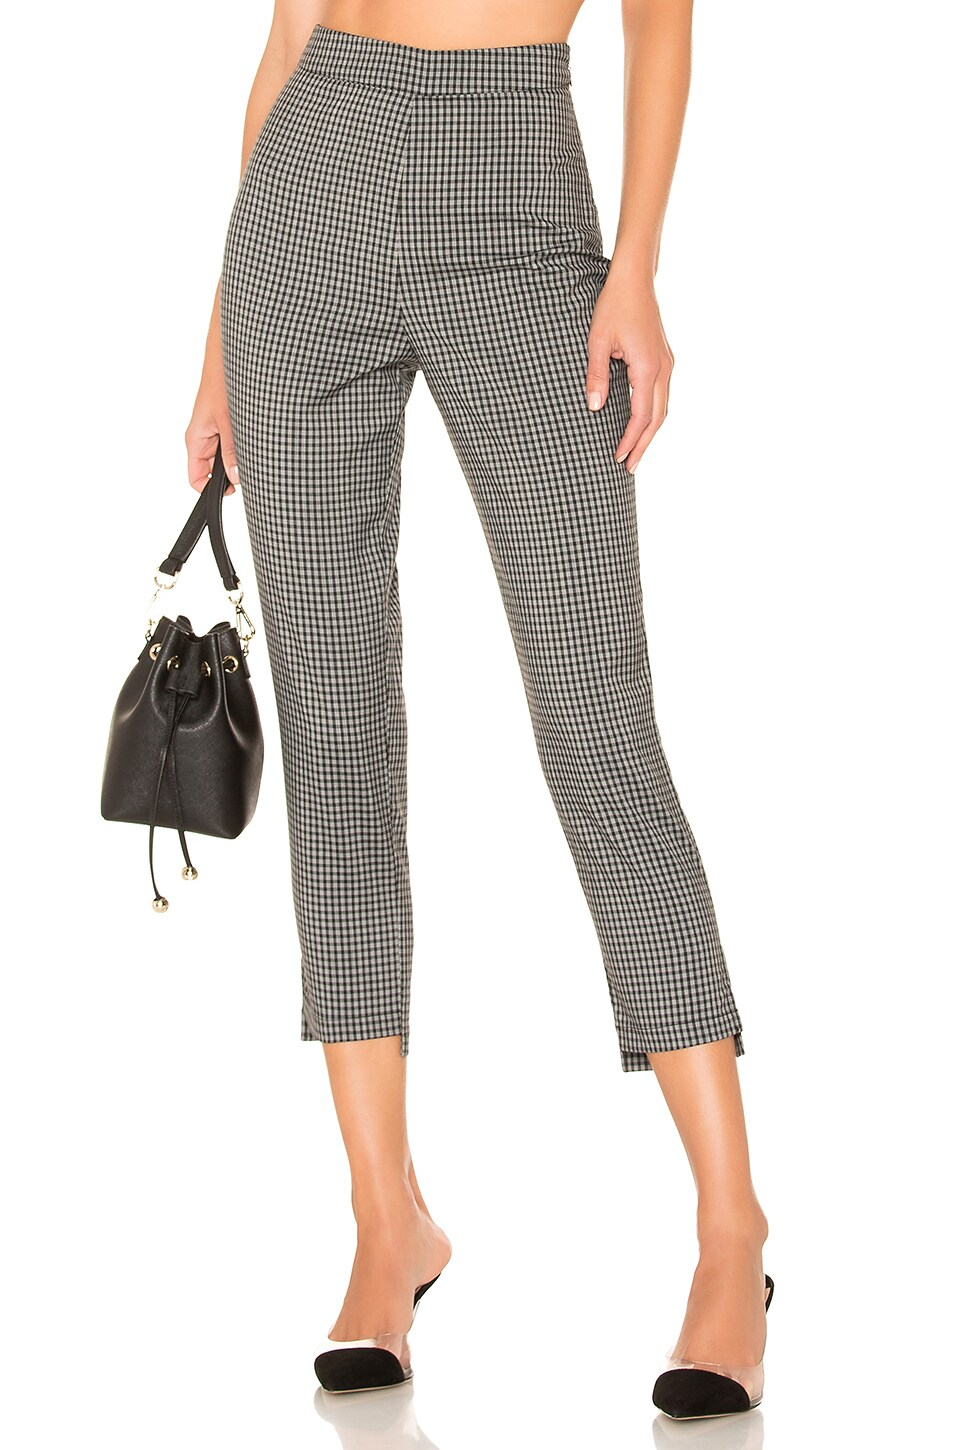 Lovers + Friends Young Professional Pants in Black & White Check